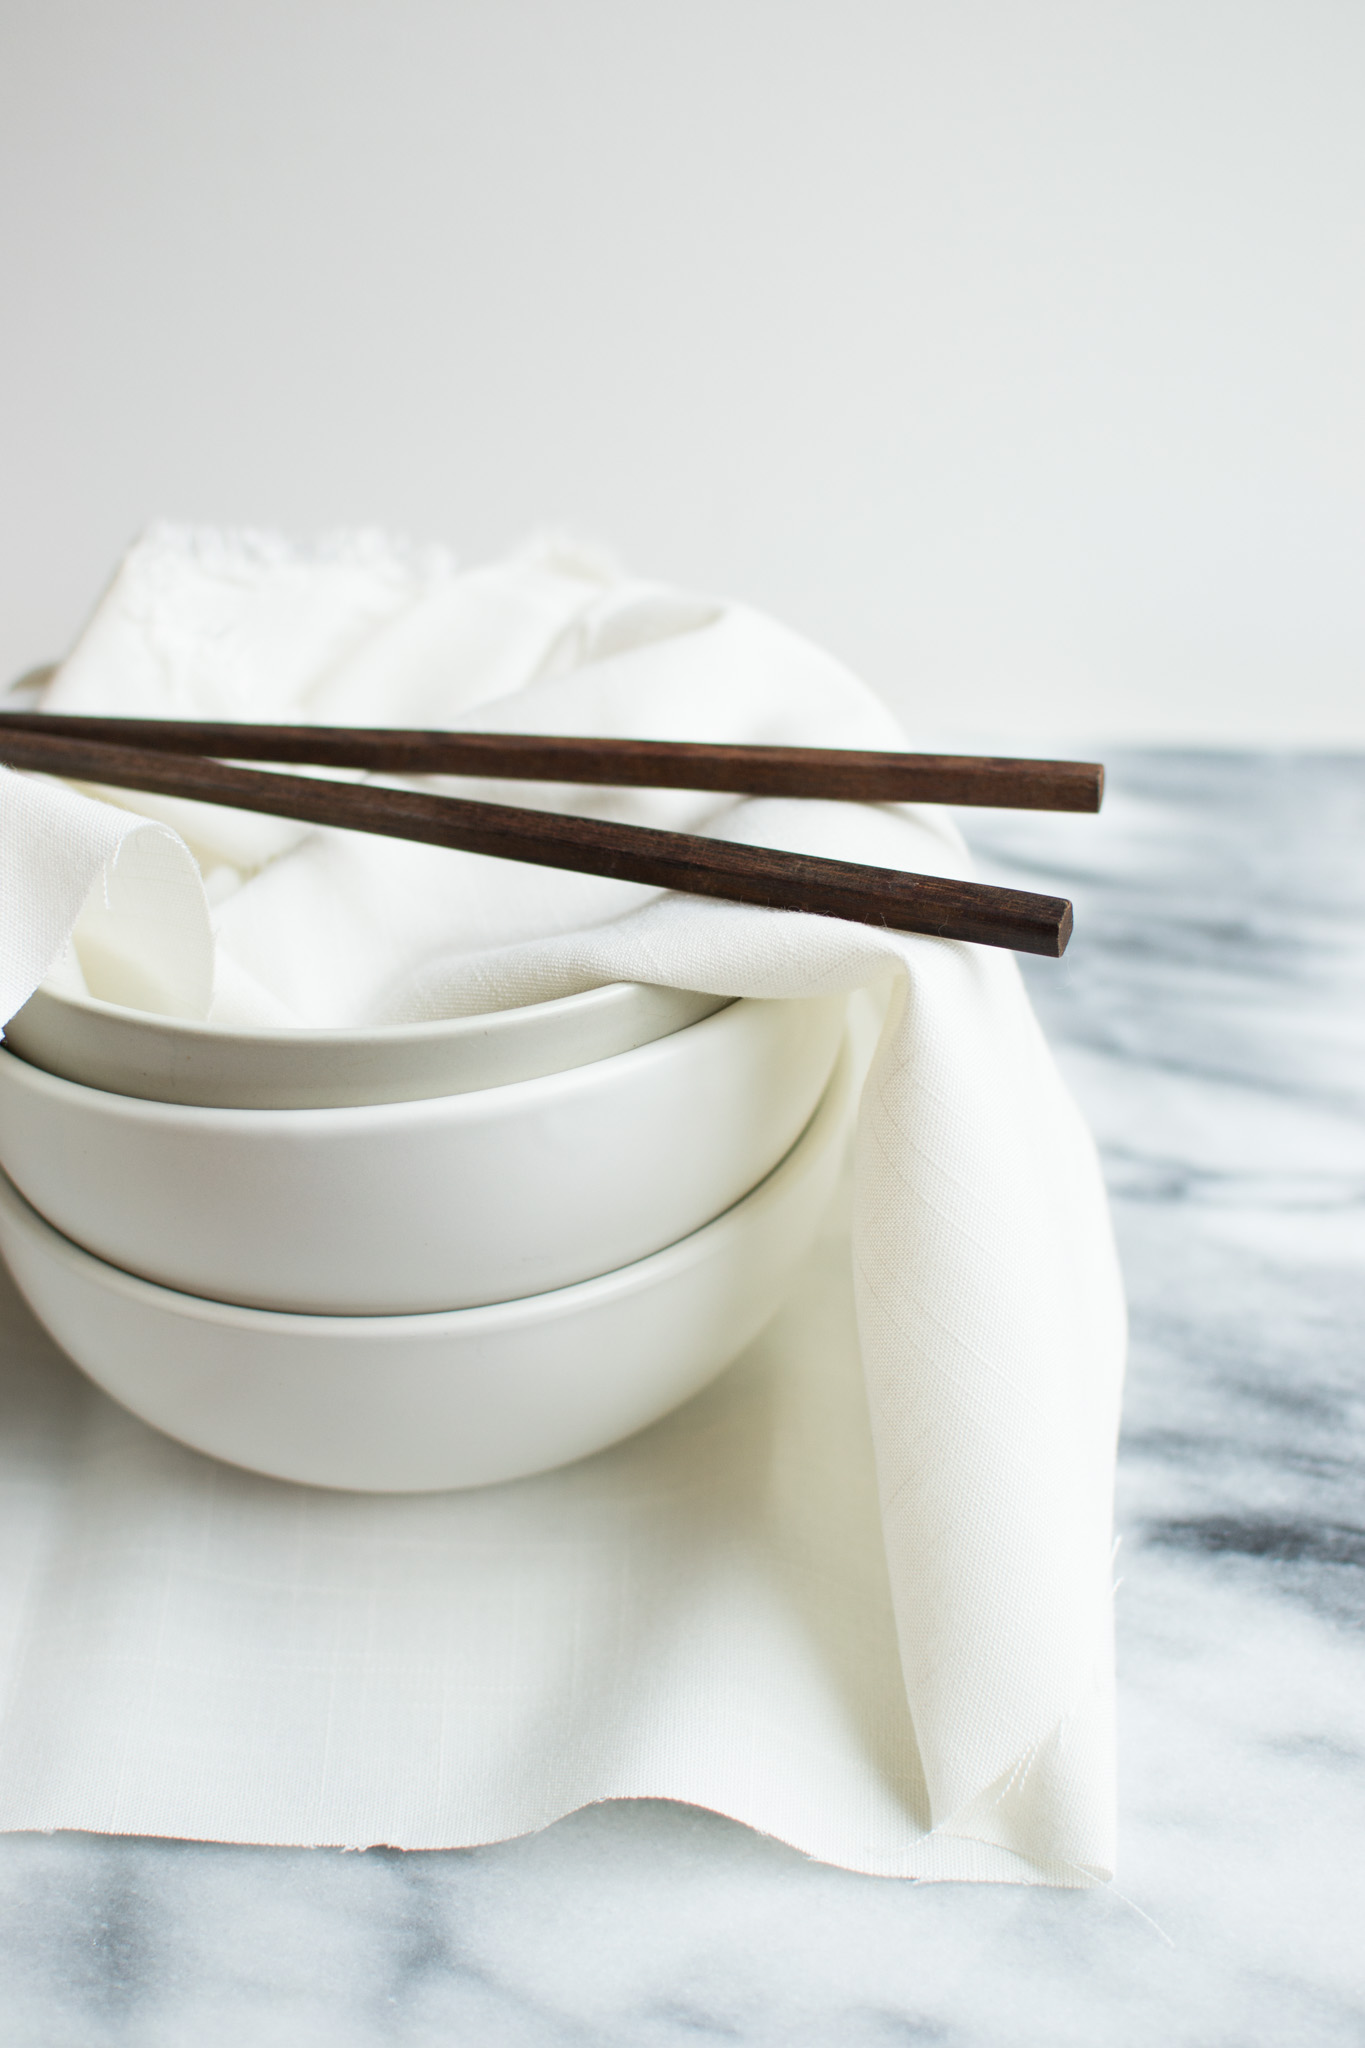 Individual responsibility at a Zen monastery: three bowls, a spoon and a pair of chopsticks wrapped up in a cloth.